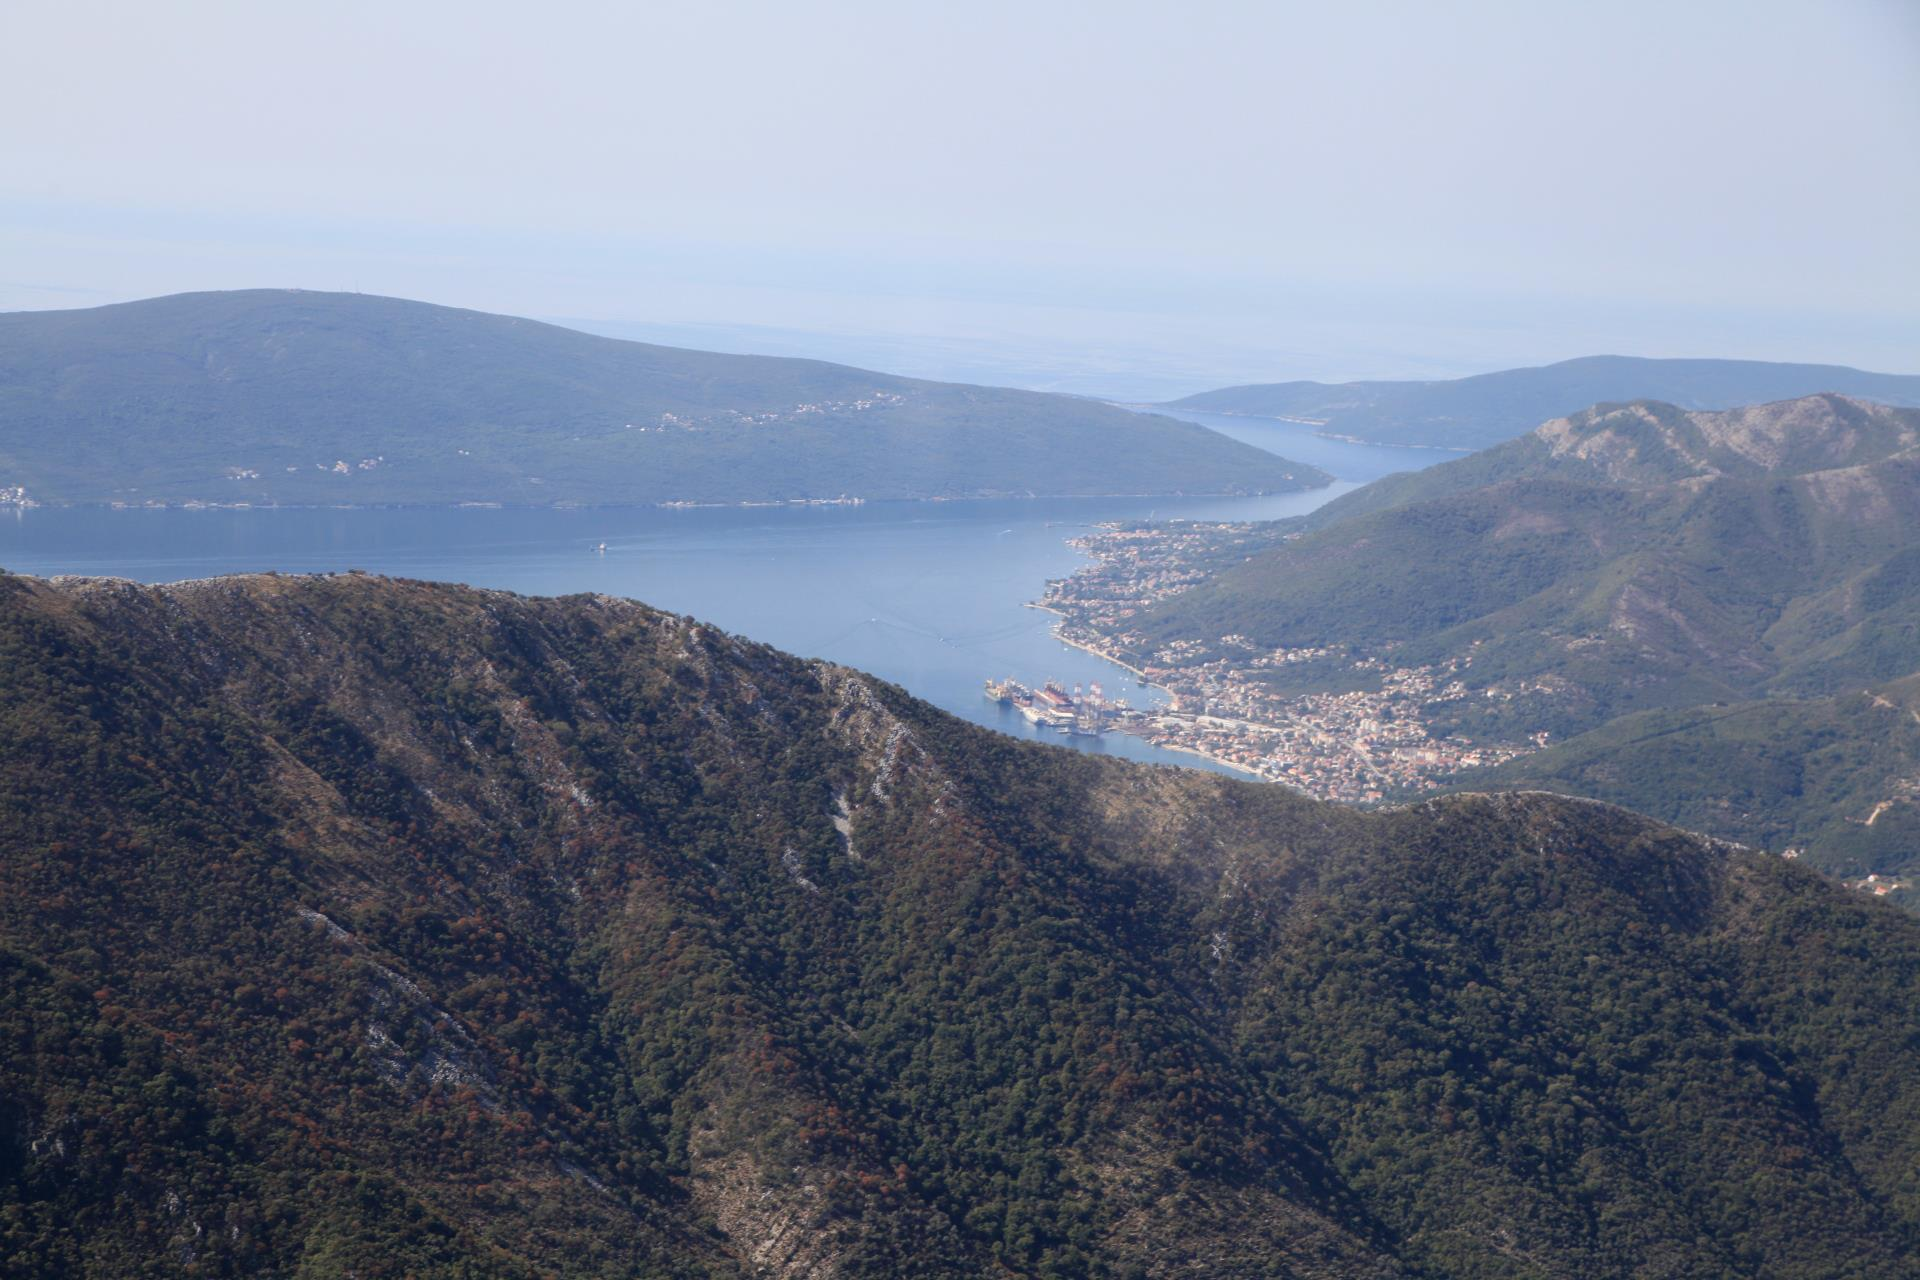 Bay of Tivat as seen from the Bay of Kotor